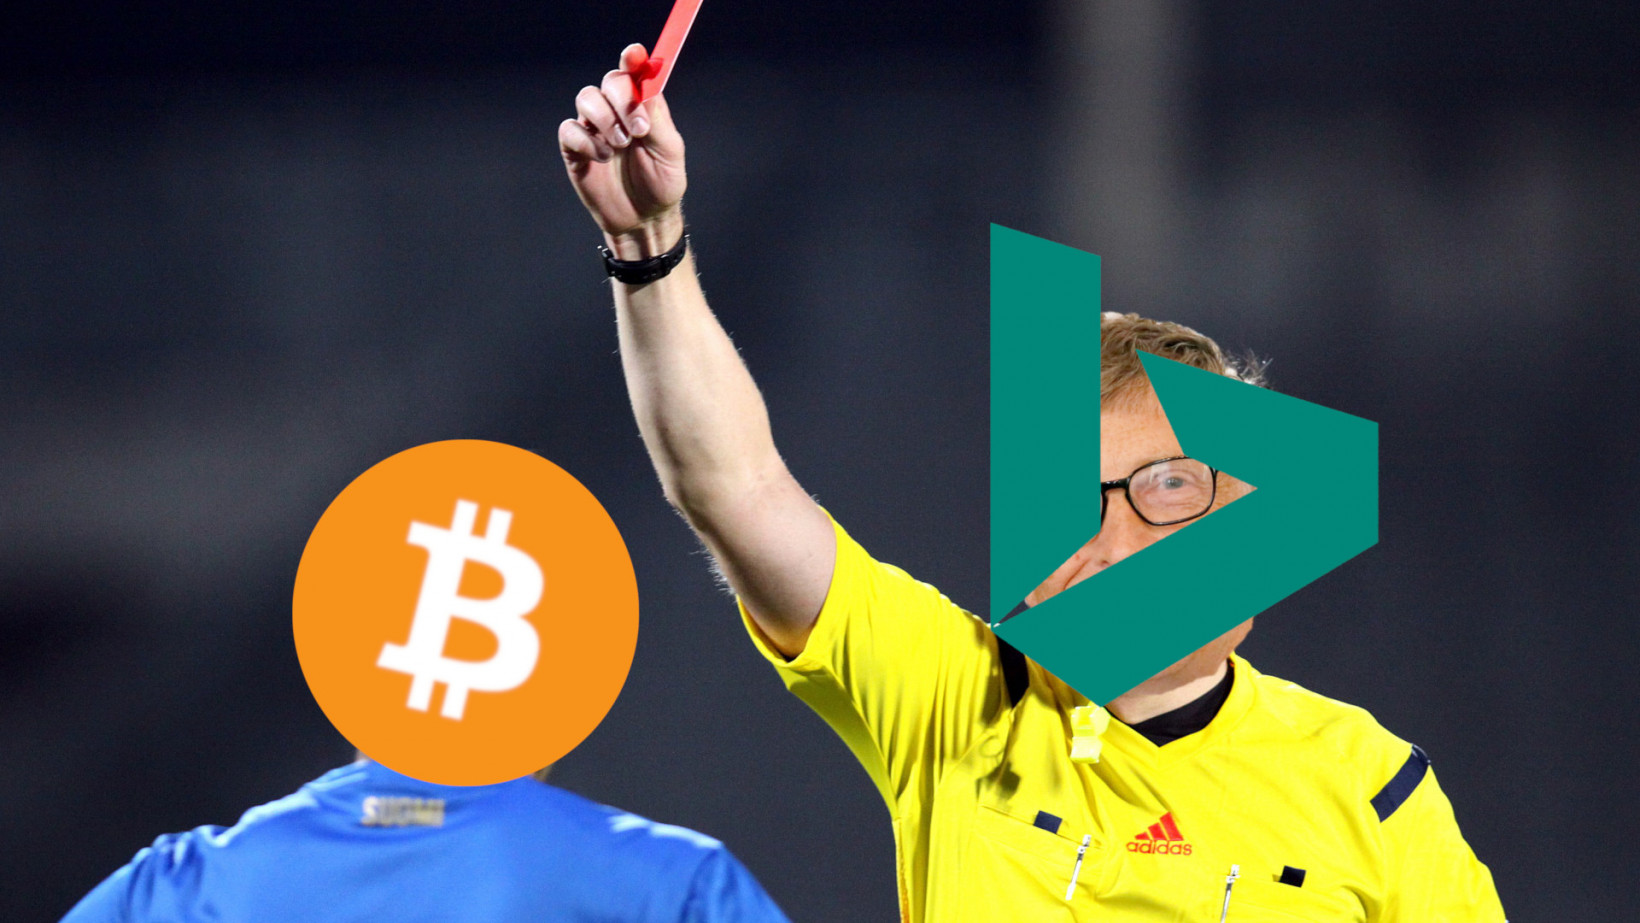 Microsoft's Bing blocked 5,000,000 cryptocurrency ads in 2018